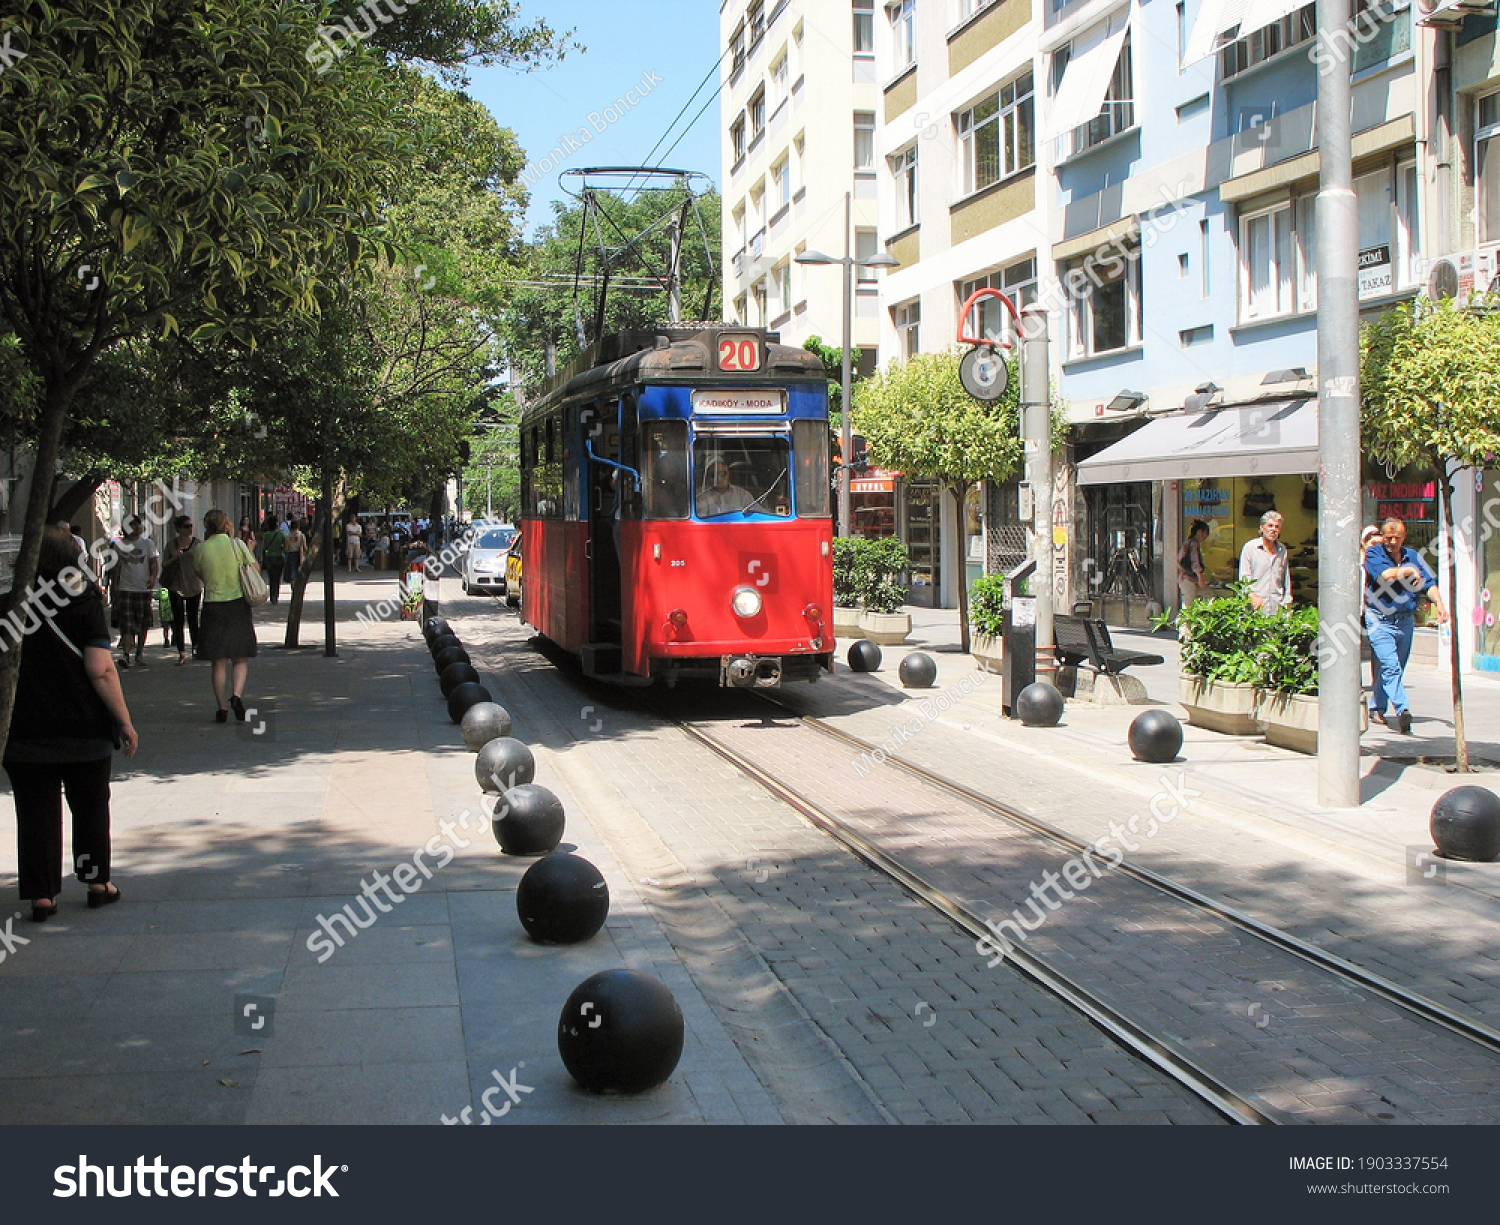 stock-photo-istanbul-turkey-june-a-red-t